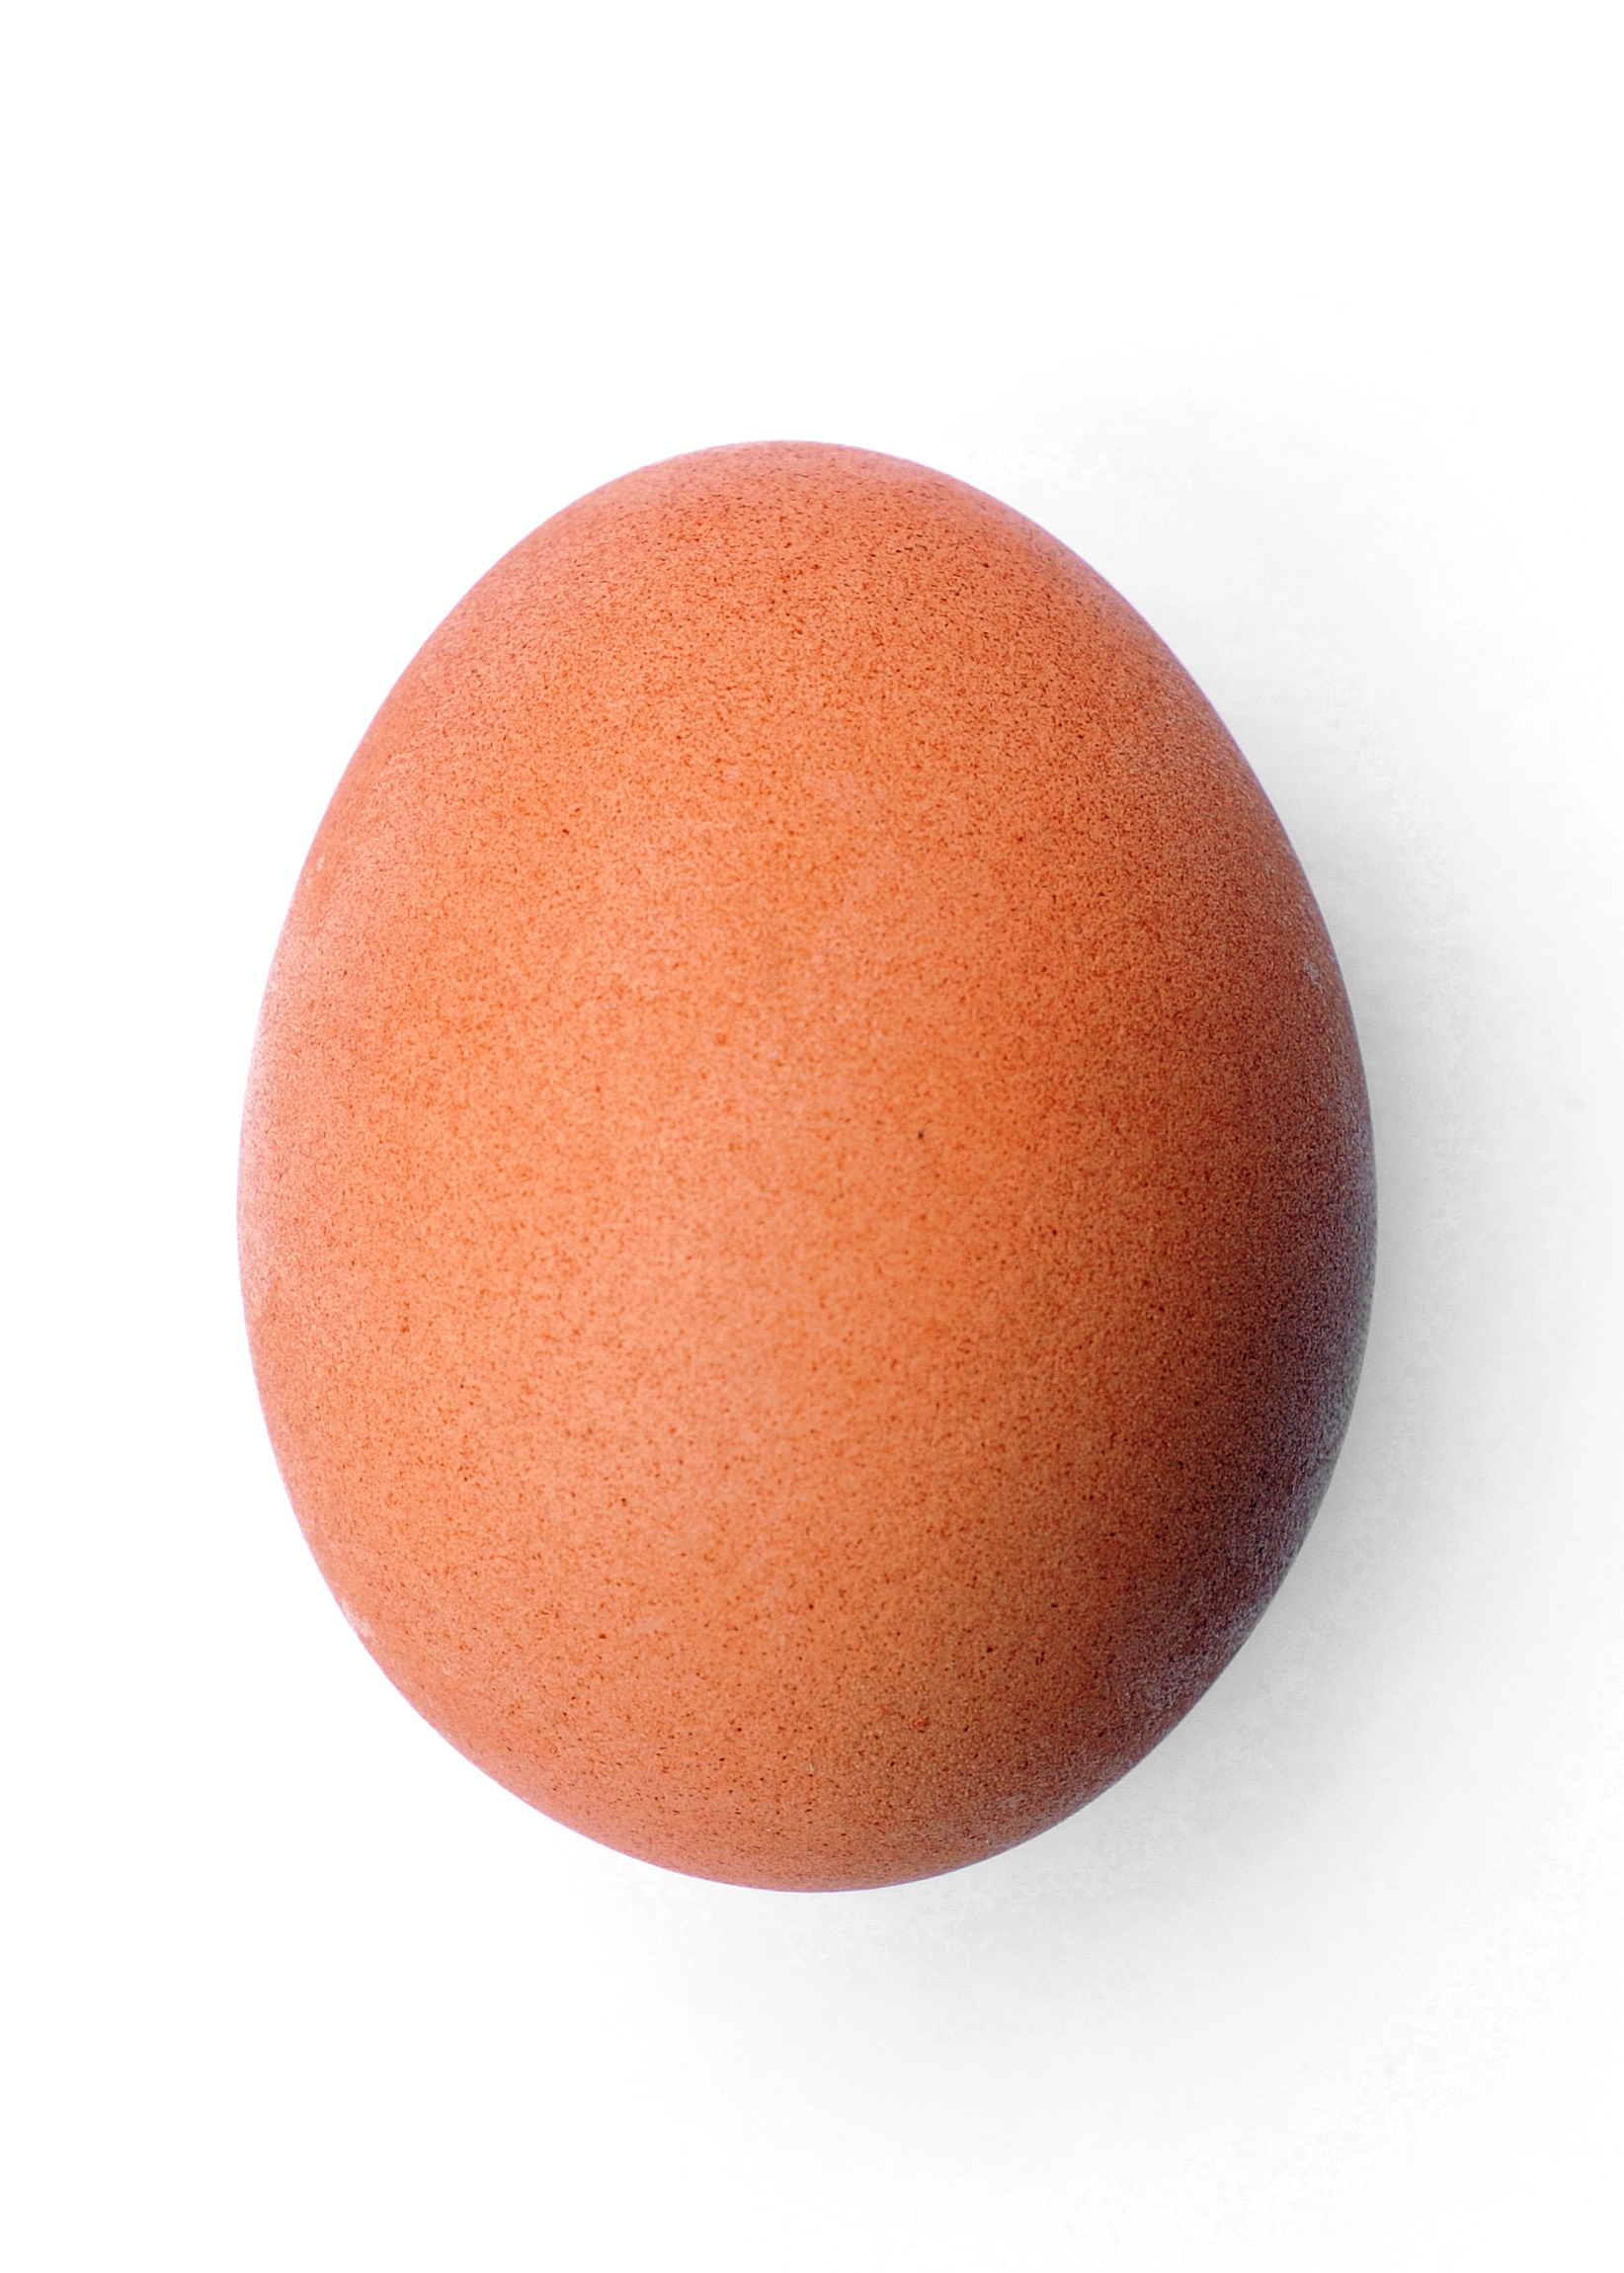 http://upload.wikimedia.org/wikipedia/commons/5/5e/Chicken_egg_2009-06-04.jpg